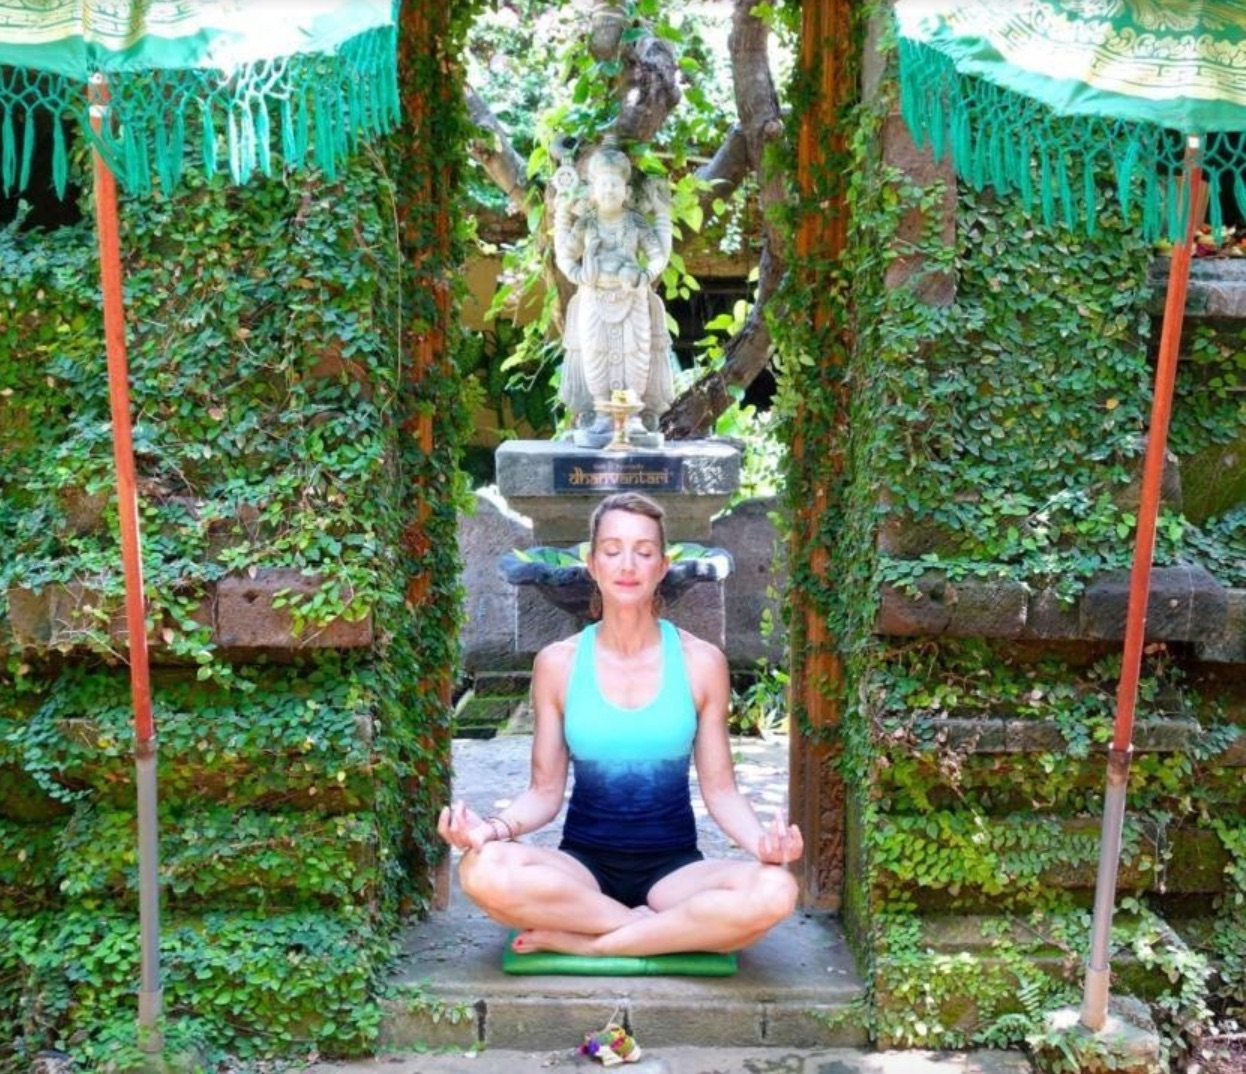 photo of woman meditating in a garden